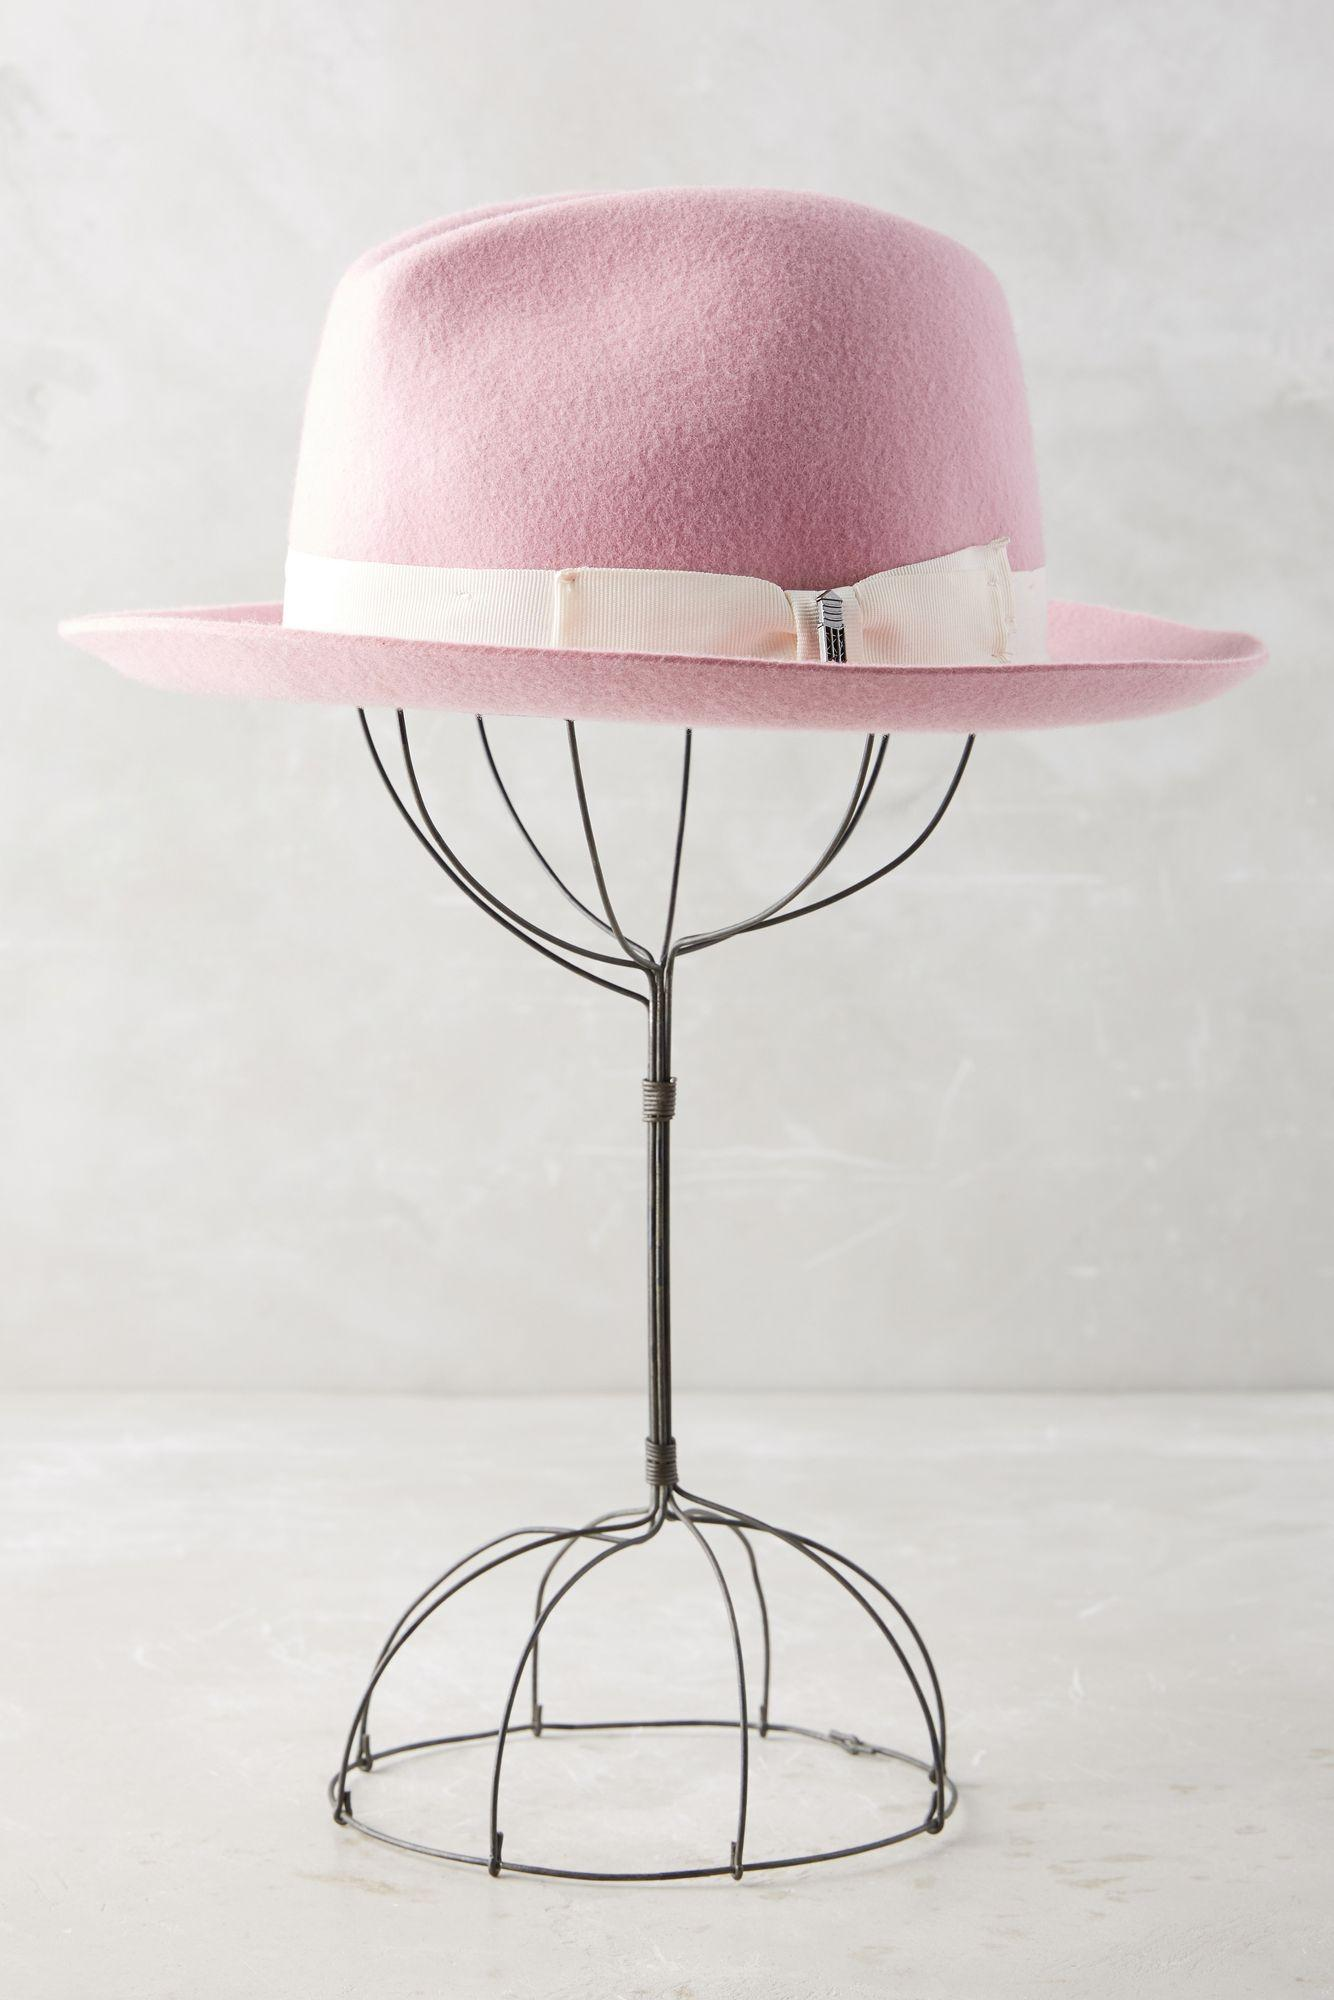 ab421ef81febc Cheap(ish) hats Similar to the Pink Joanne one - Page 2 - Gaga ...